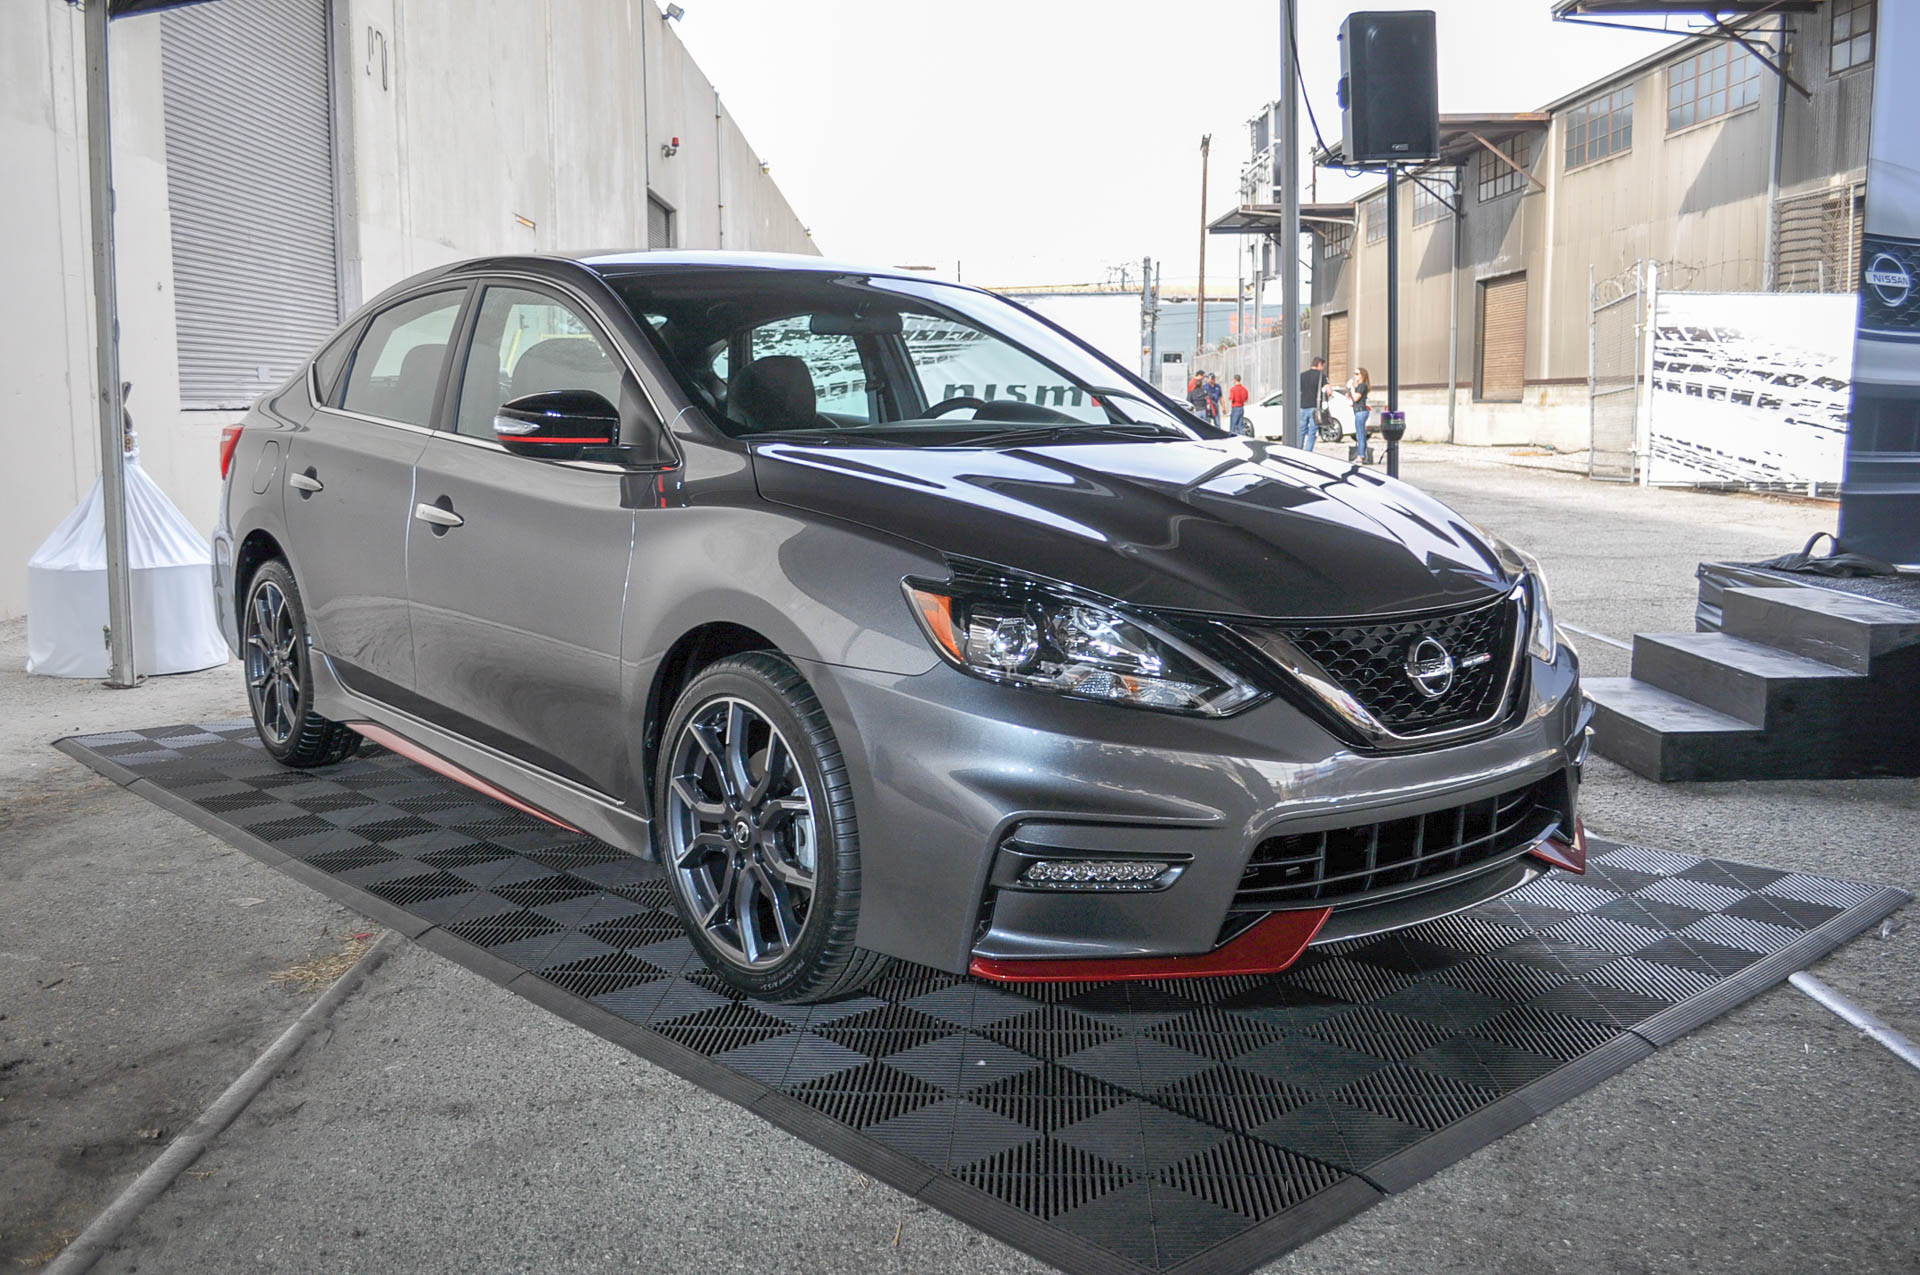 1107276 2017 Nissan Sentra Nismo Revealed Ahead Of 2016 La Auto Show on 2016 nissan altima sv